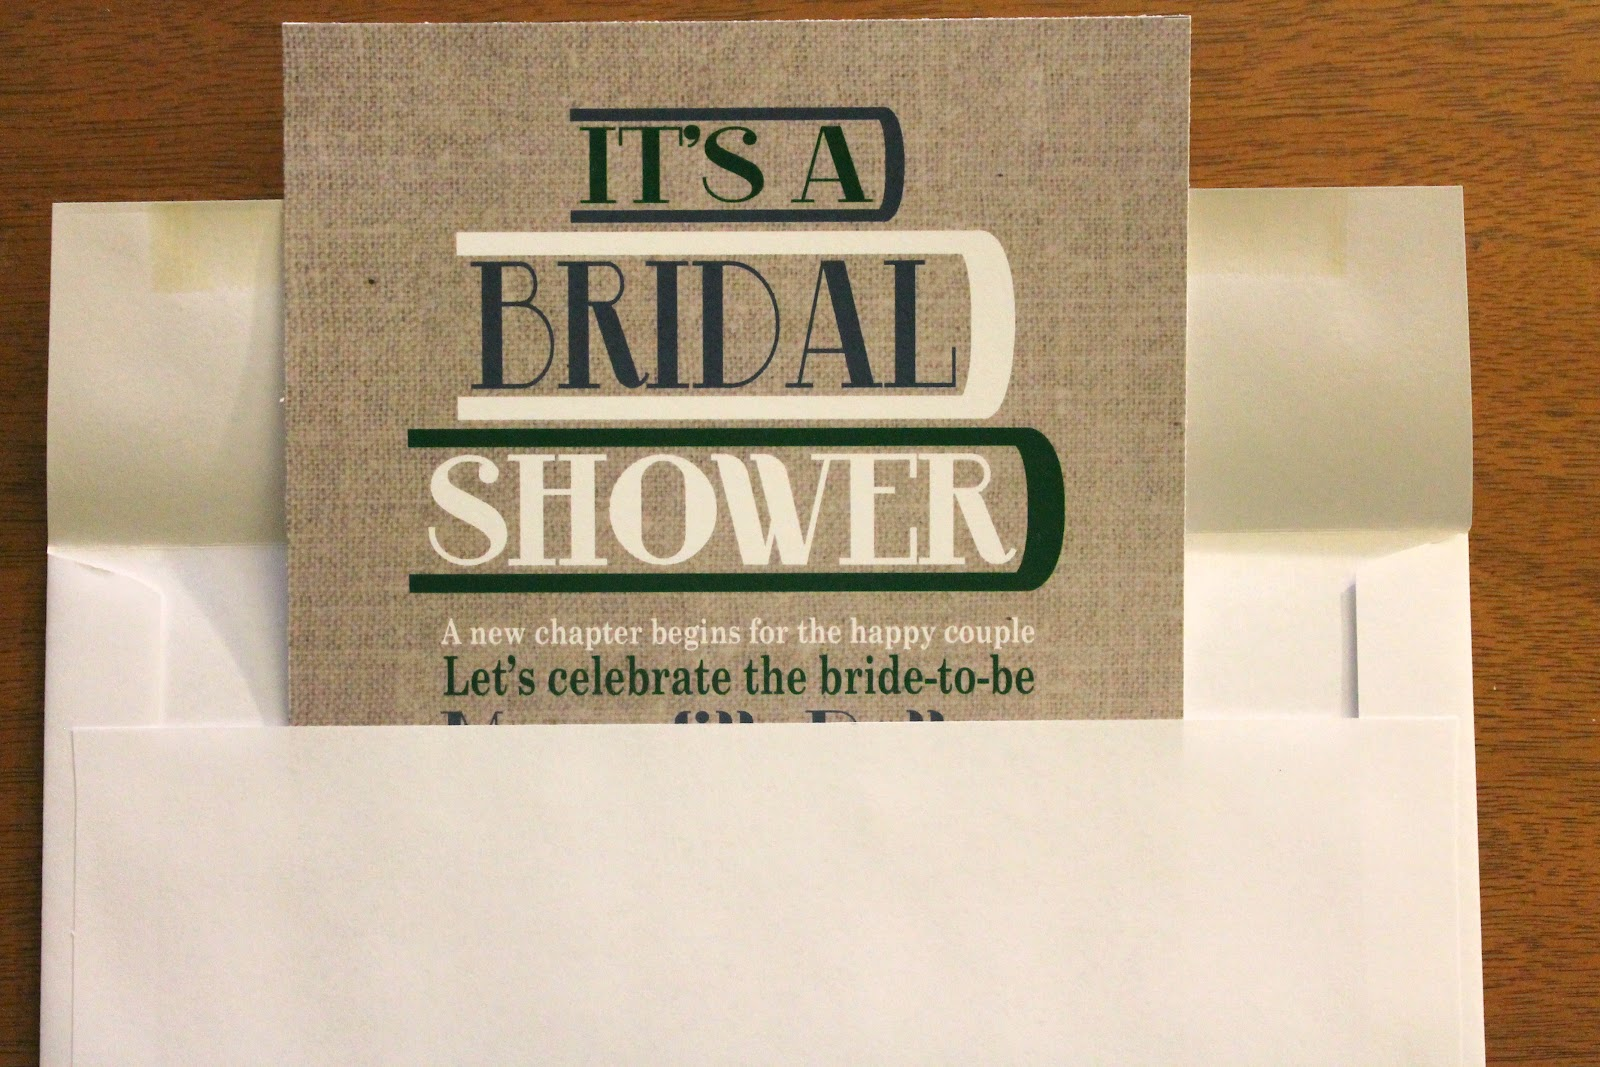 A Literary Bridal Shower Diy How To Post